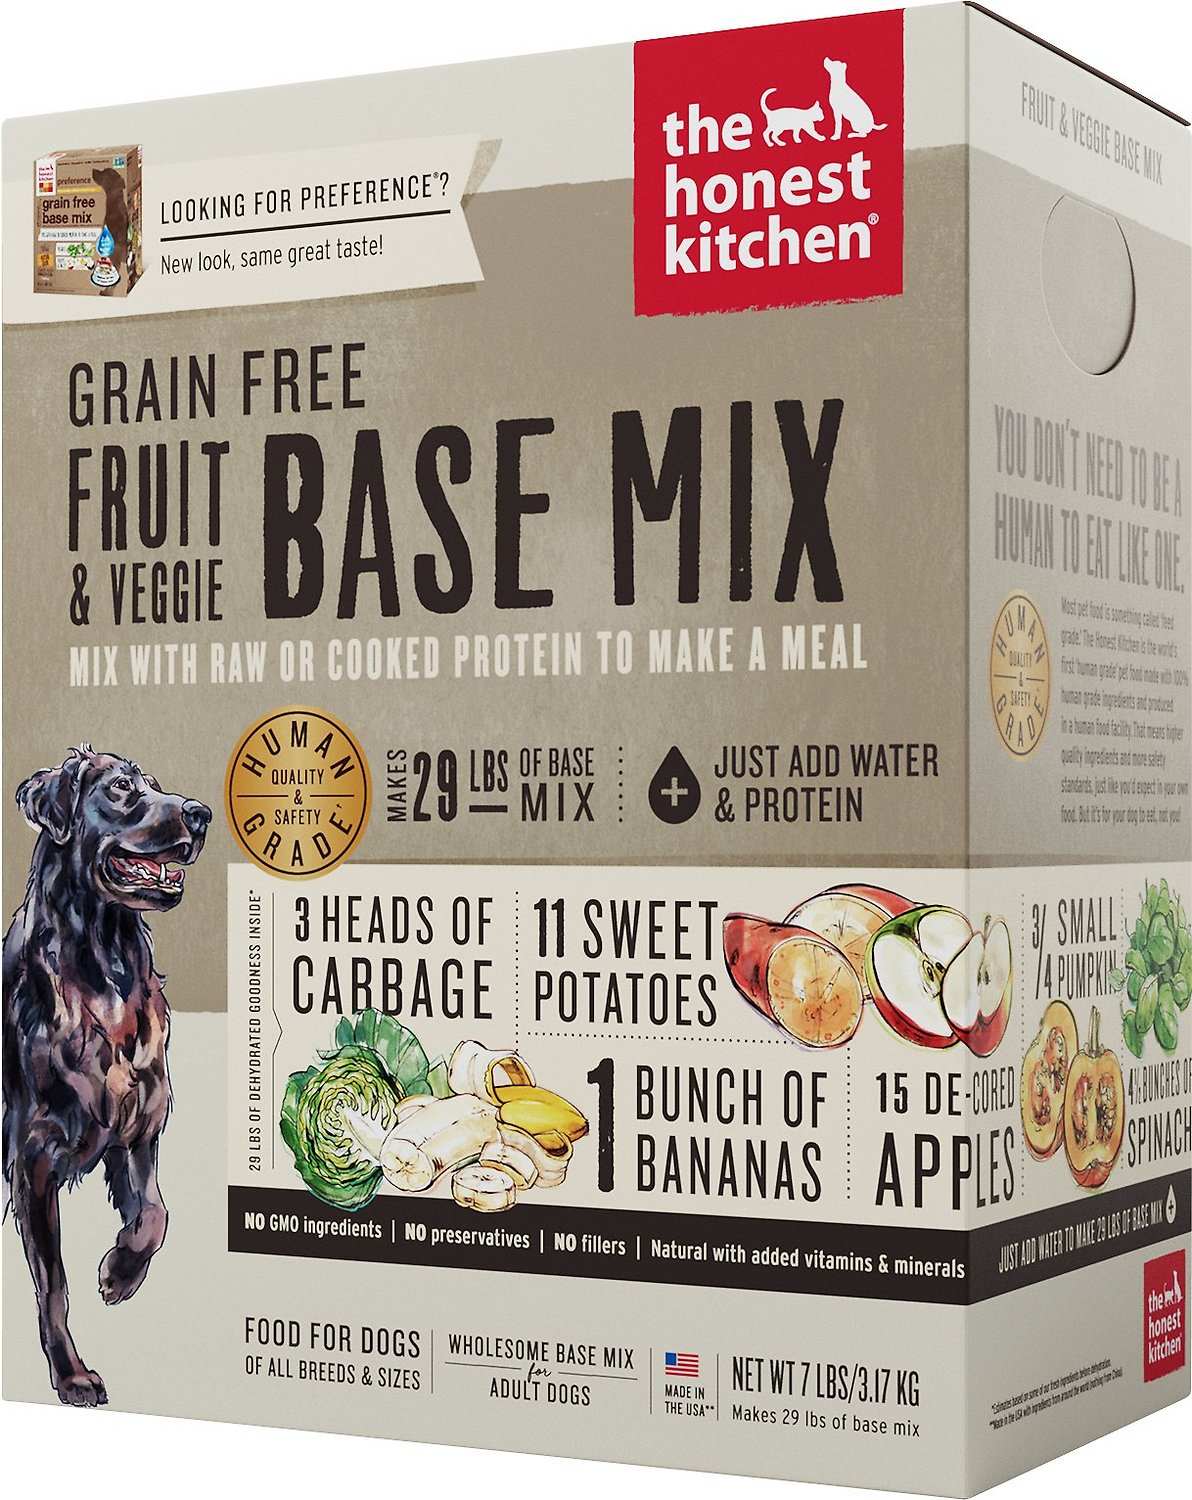 The Honest Kitchen Meat Free Fruit & Veg Dehydrated Dog Food